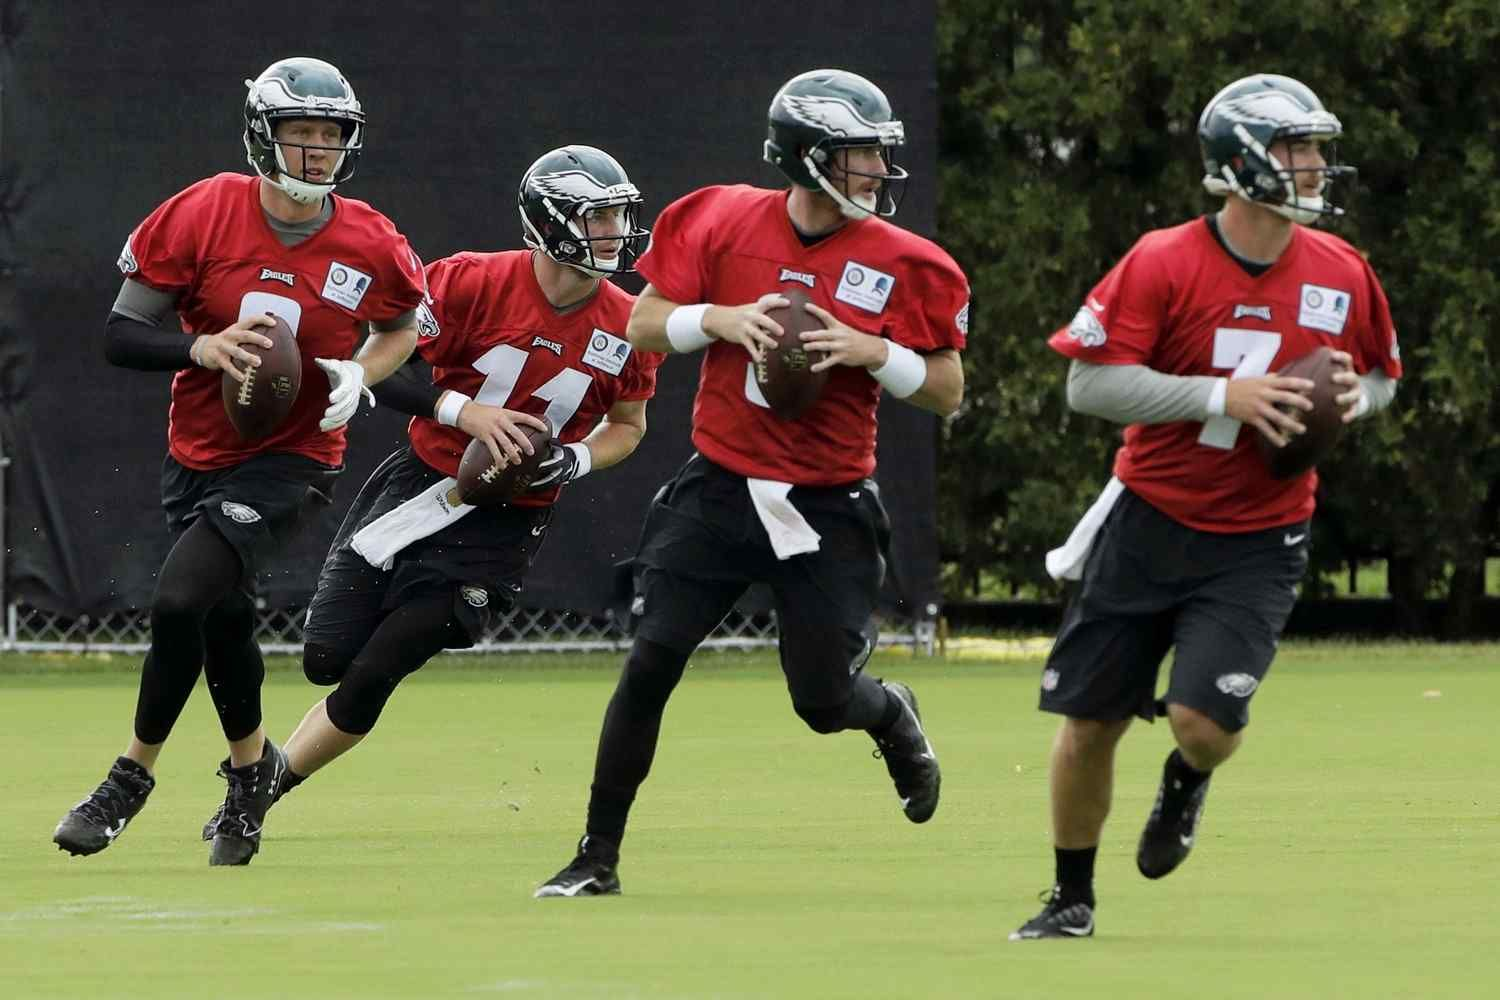 Philadelphia Gt Gt Nothing Not Even The Day Eagles Quarterback Nick Foles Tied The Nfl Record With Seven Touchdown Passes Comp Eagles Football Helmets Nfl